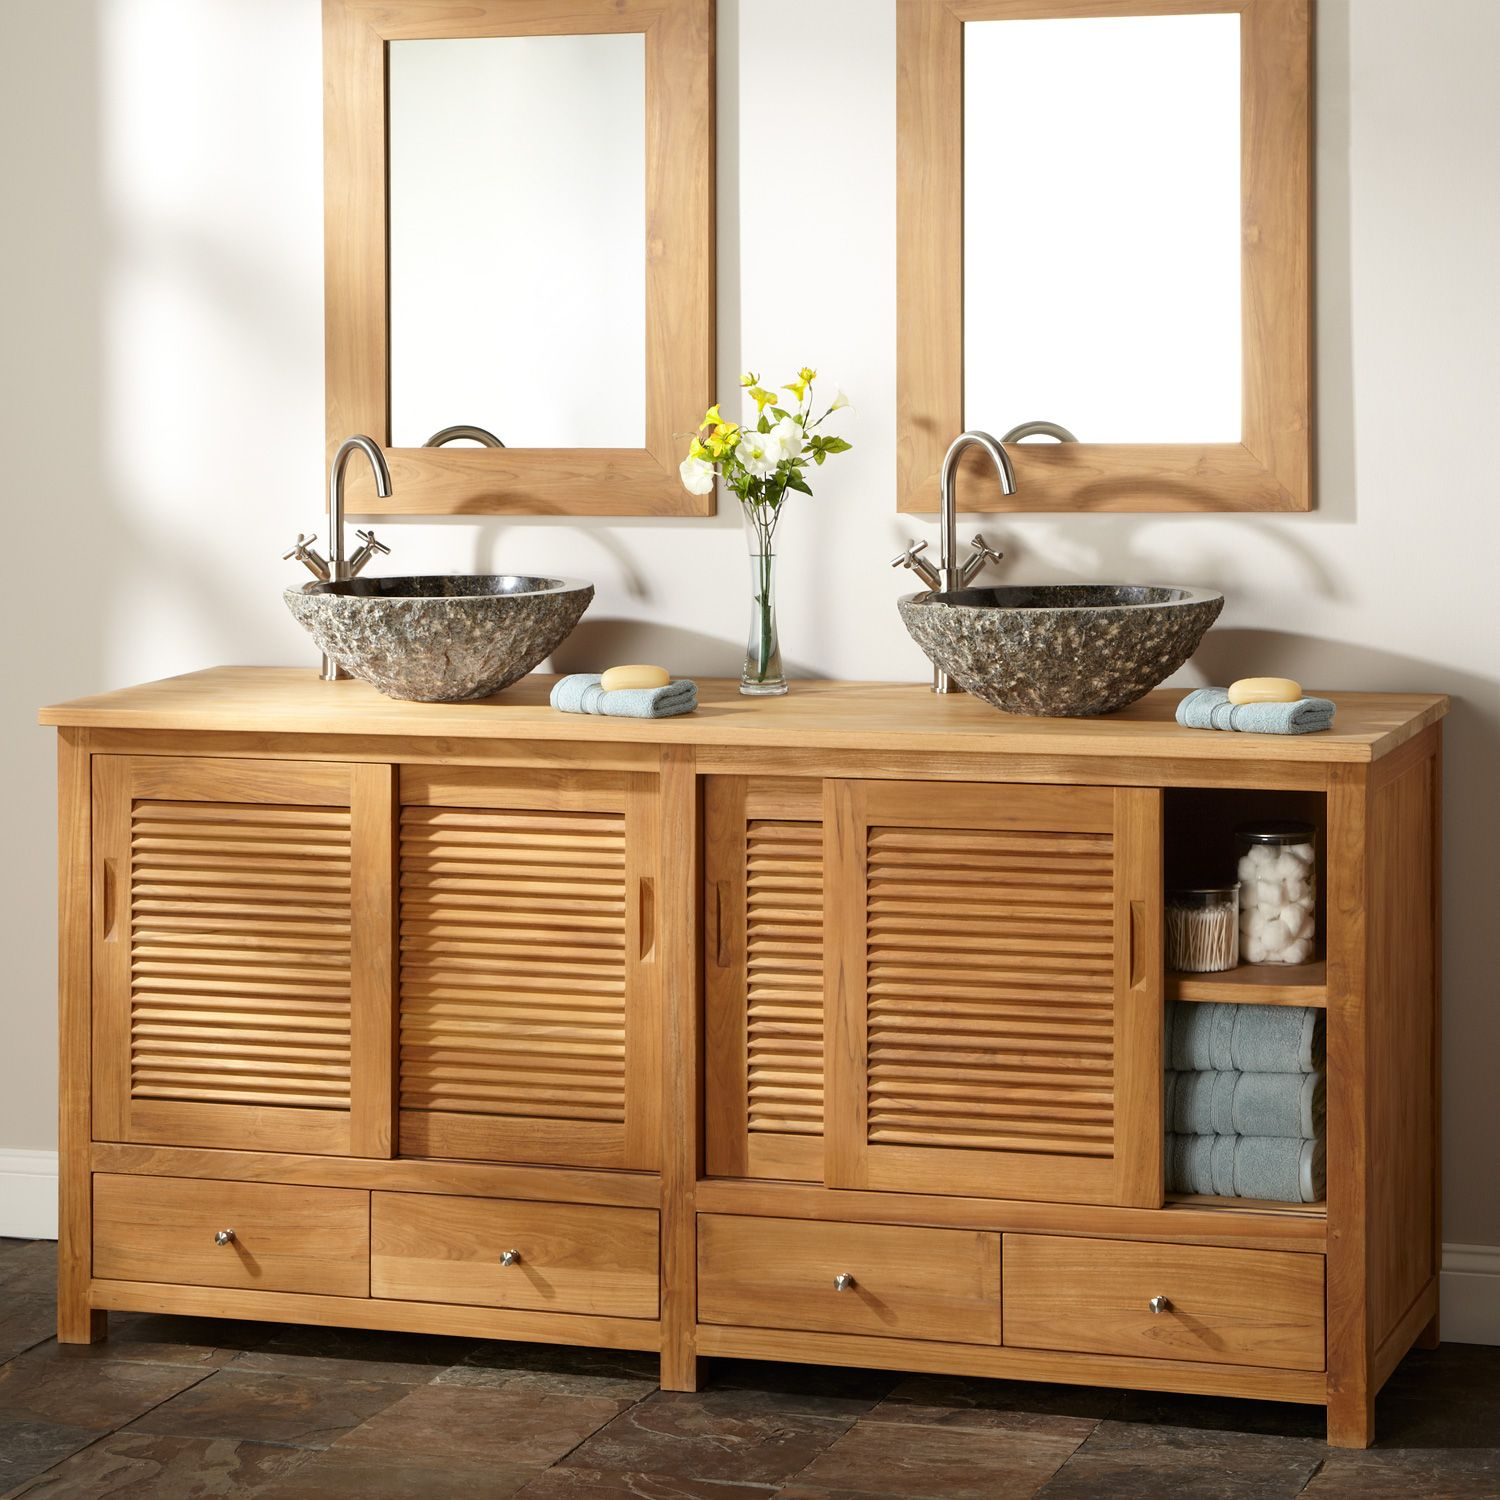 Teak bathroom storage cabinet - Made Of Durable Golden Hued Teak This Bathroom Vanity Has Sliding Louvered Doors And Four Drawers Giving You Lots Of Space For Storage